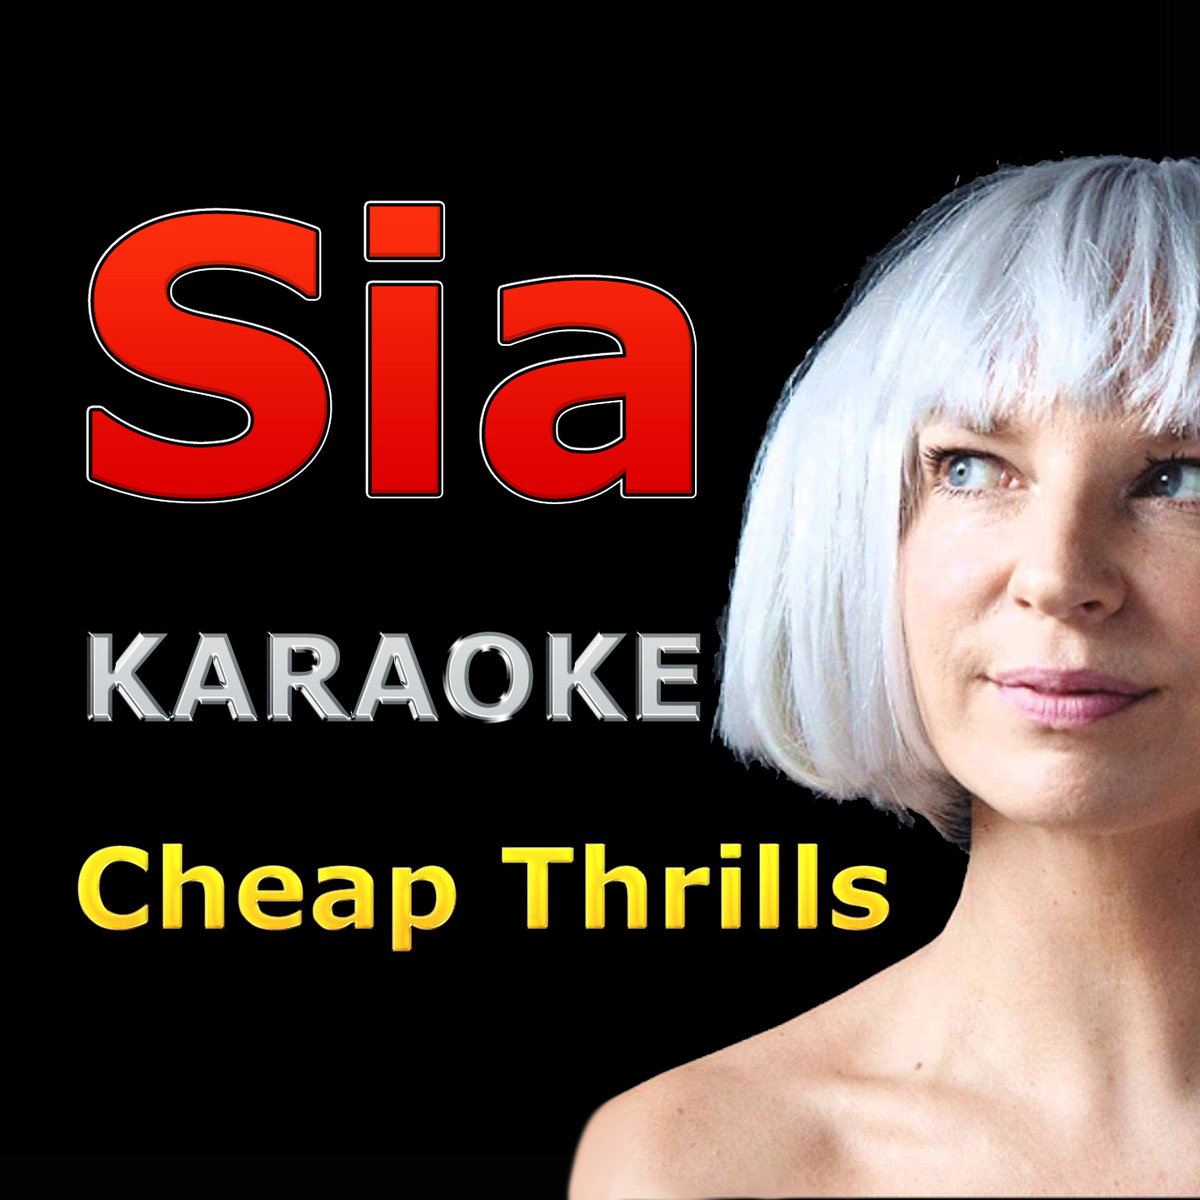 Chandeliers sia mp3 download \\ PREHUMANS.ML